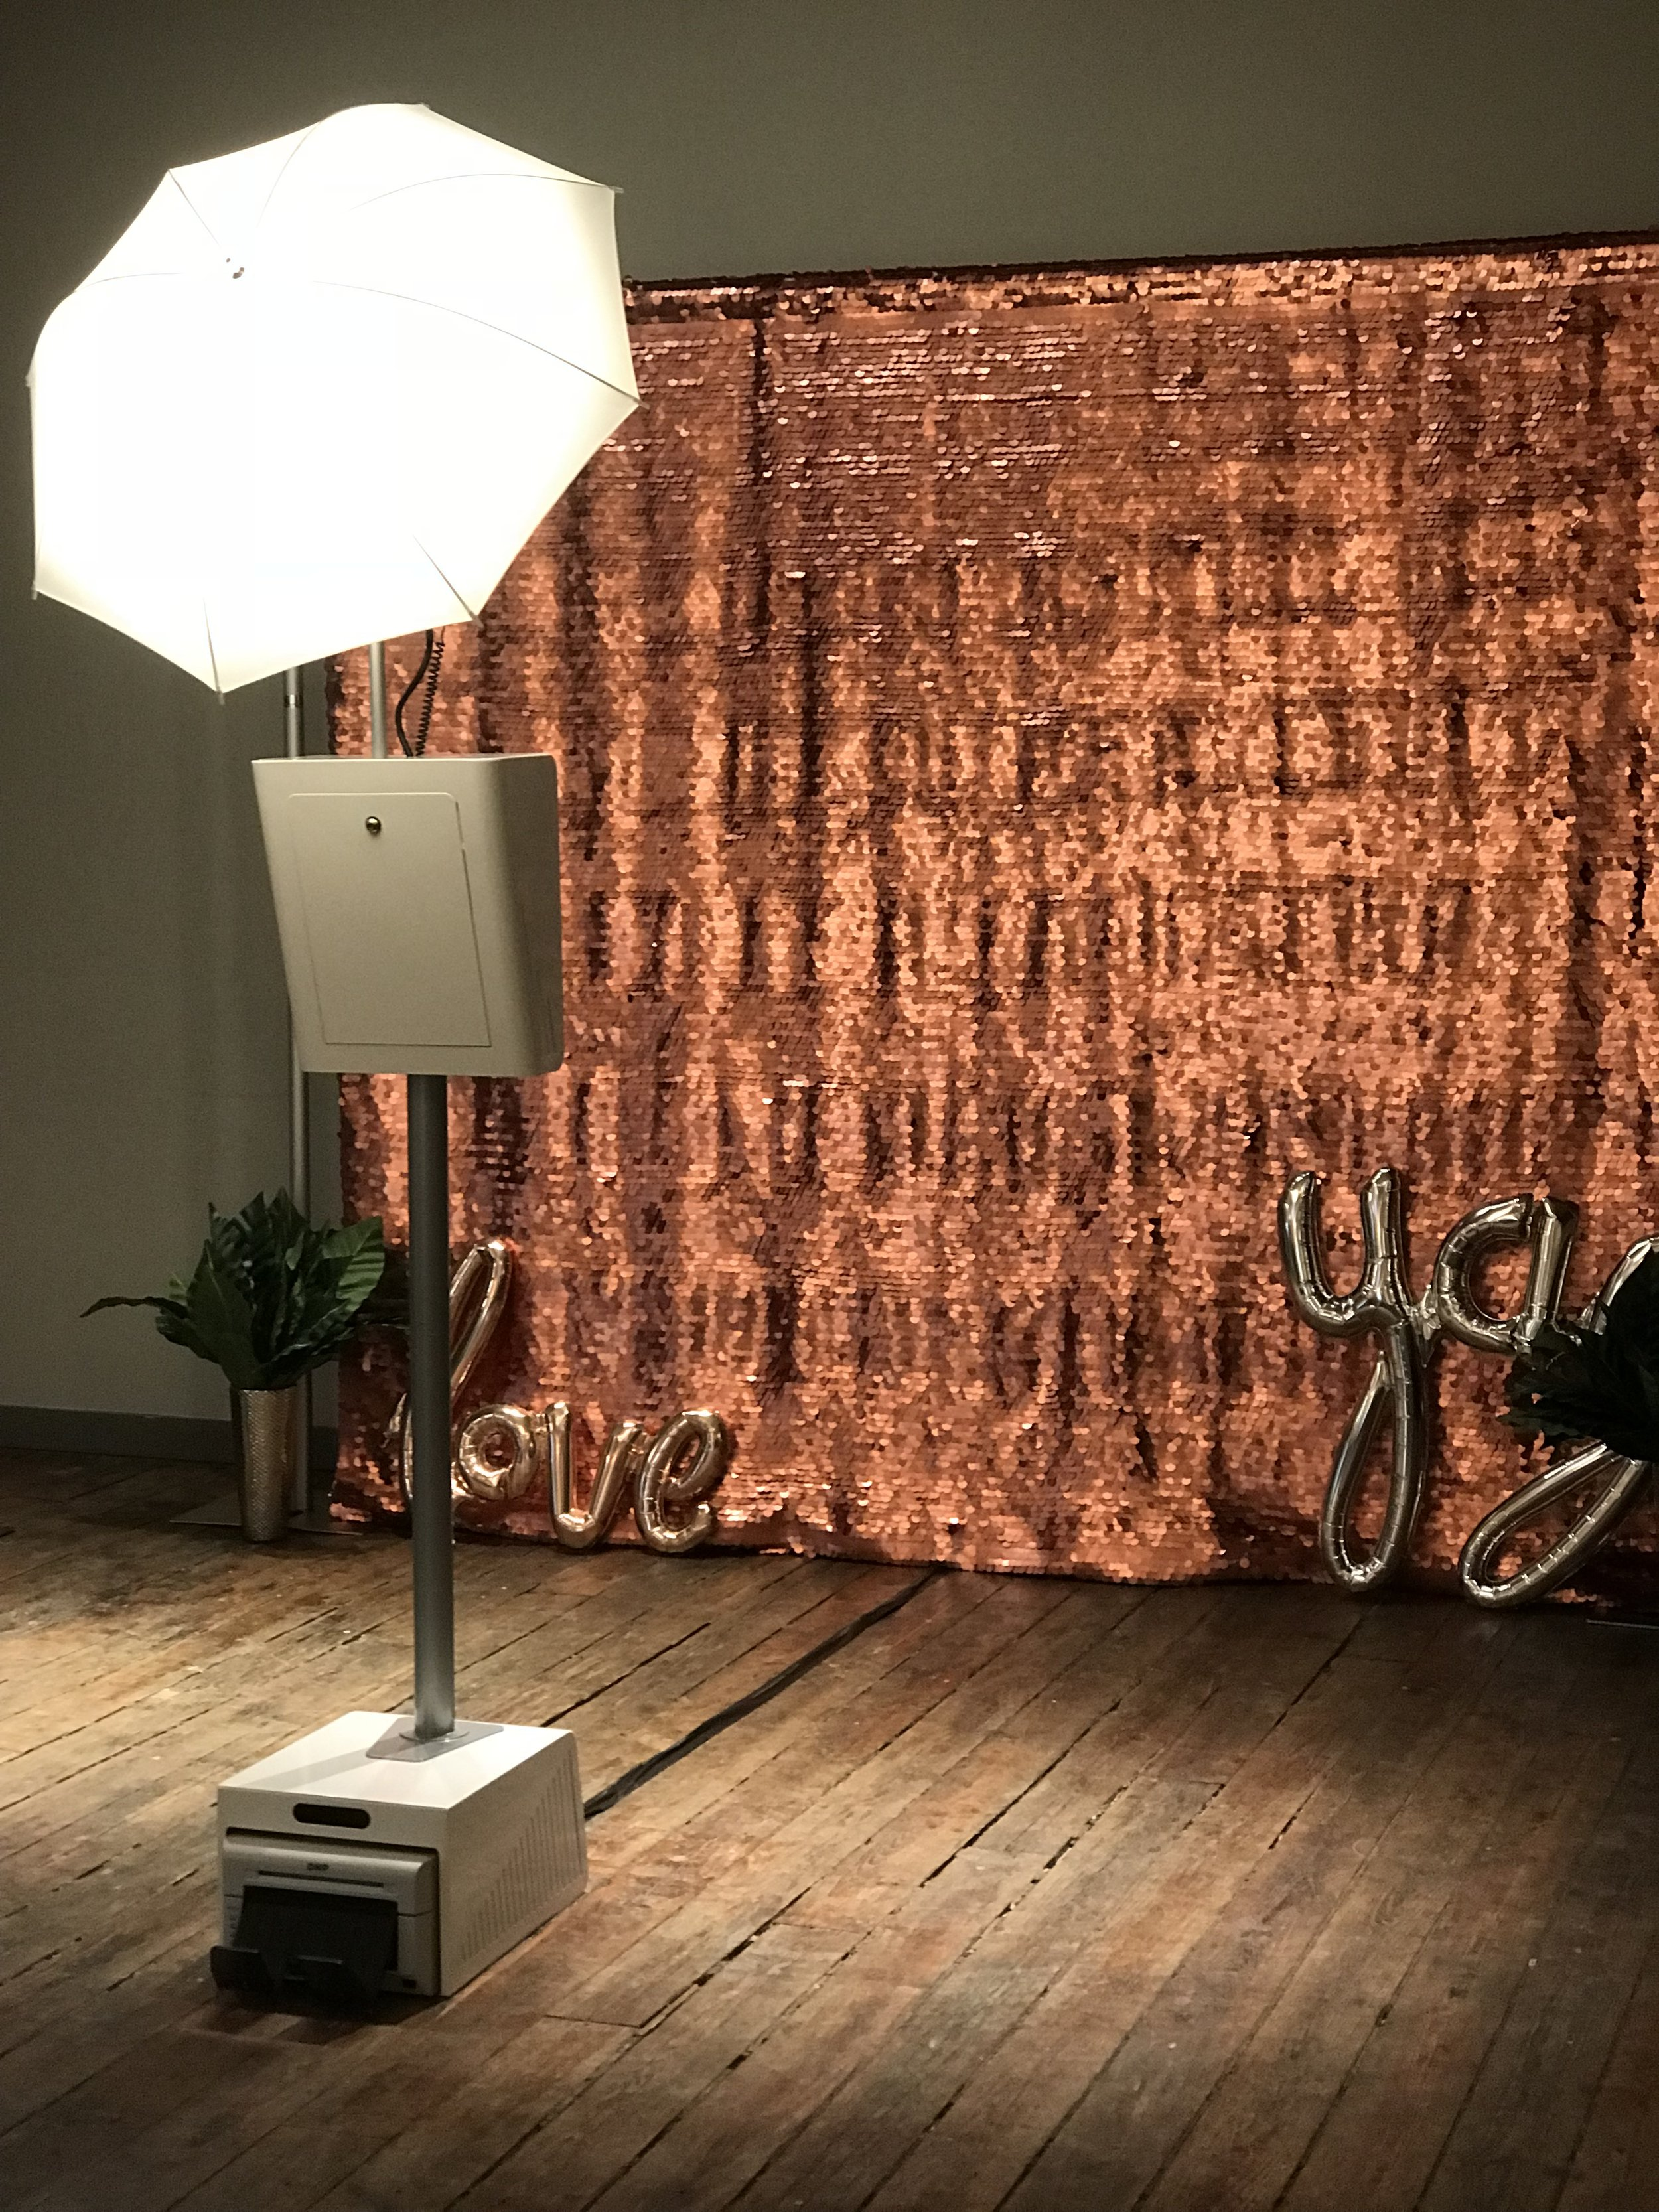 Modern, Sleek, FUN - Who knew a photo booth could look THIS good?!